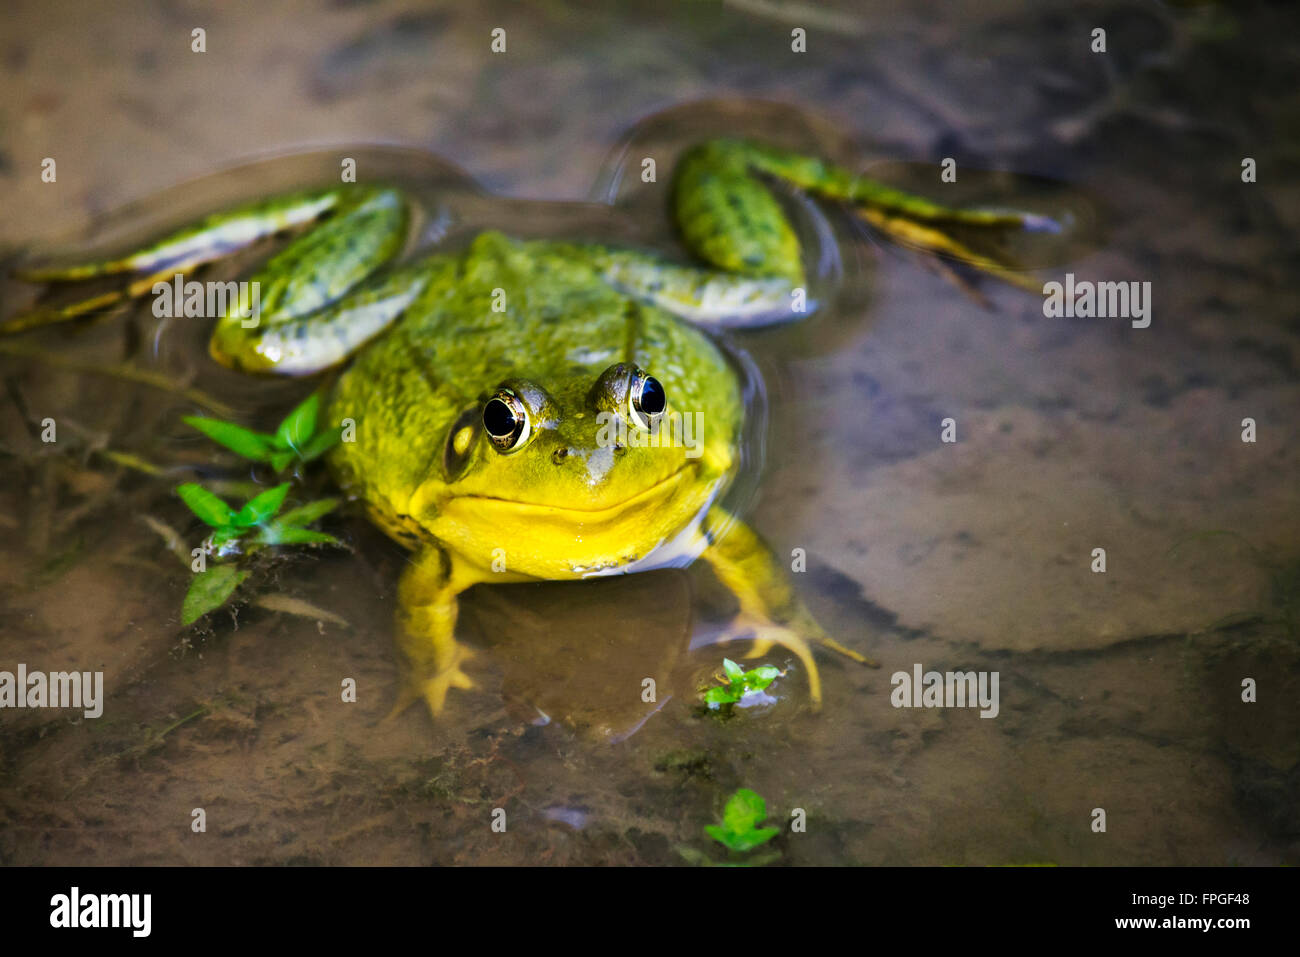 Green frog front view up close in pond habitat - Stock Image